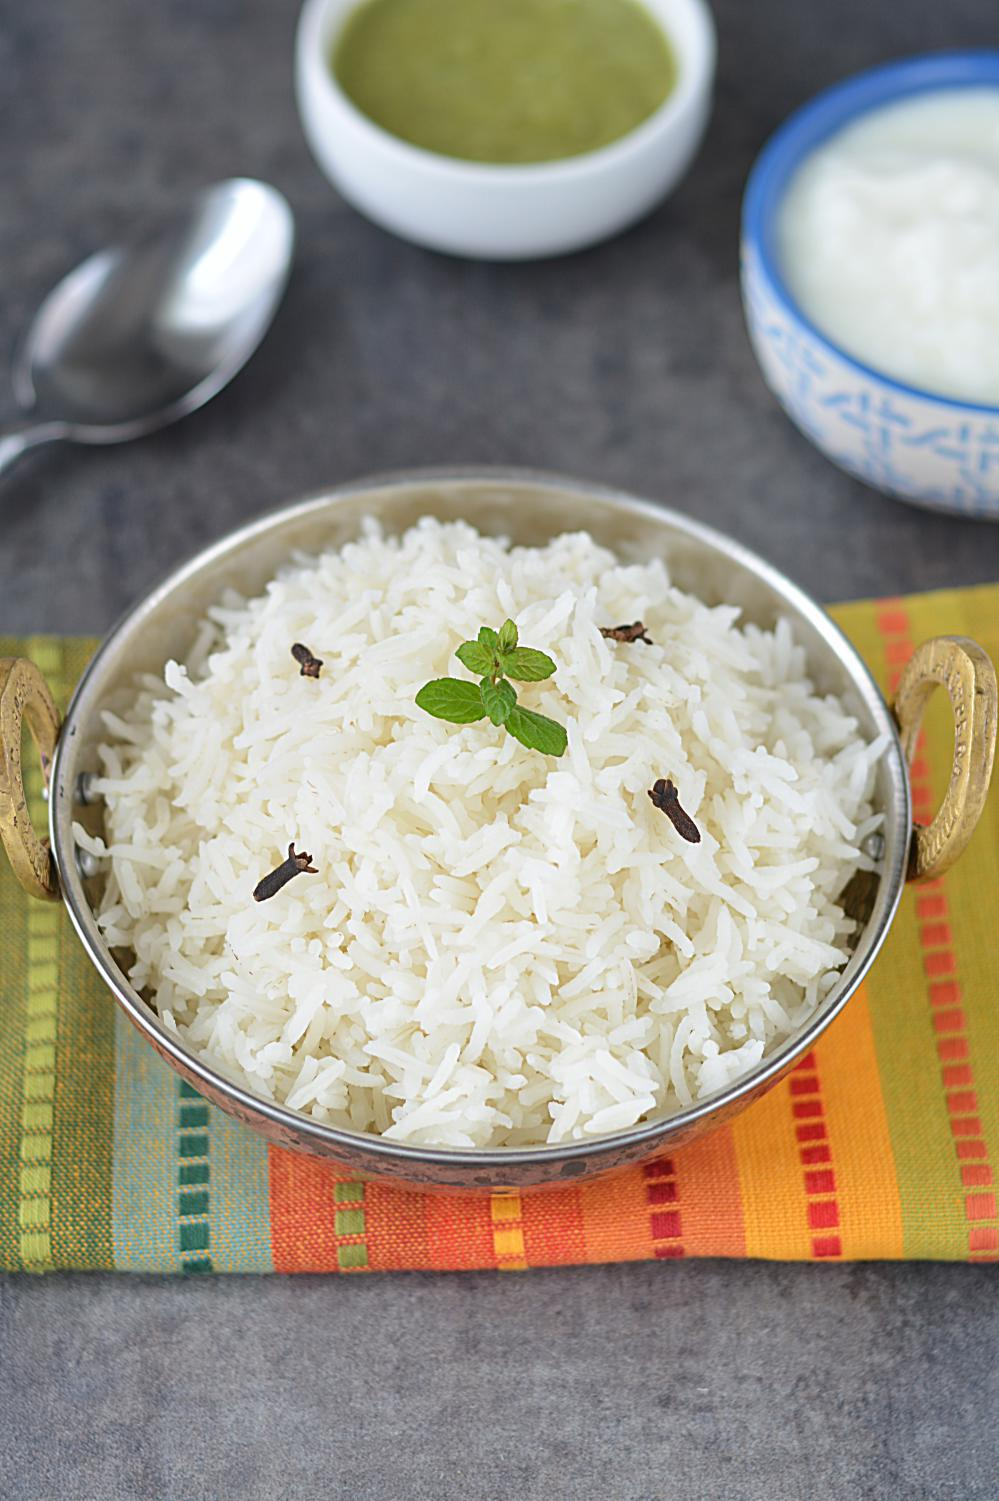 Calories count 1 cup cooked white rice